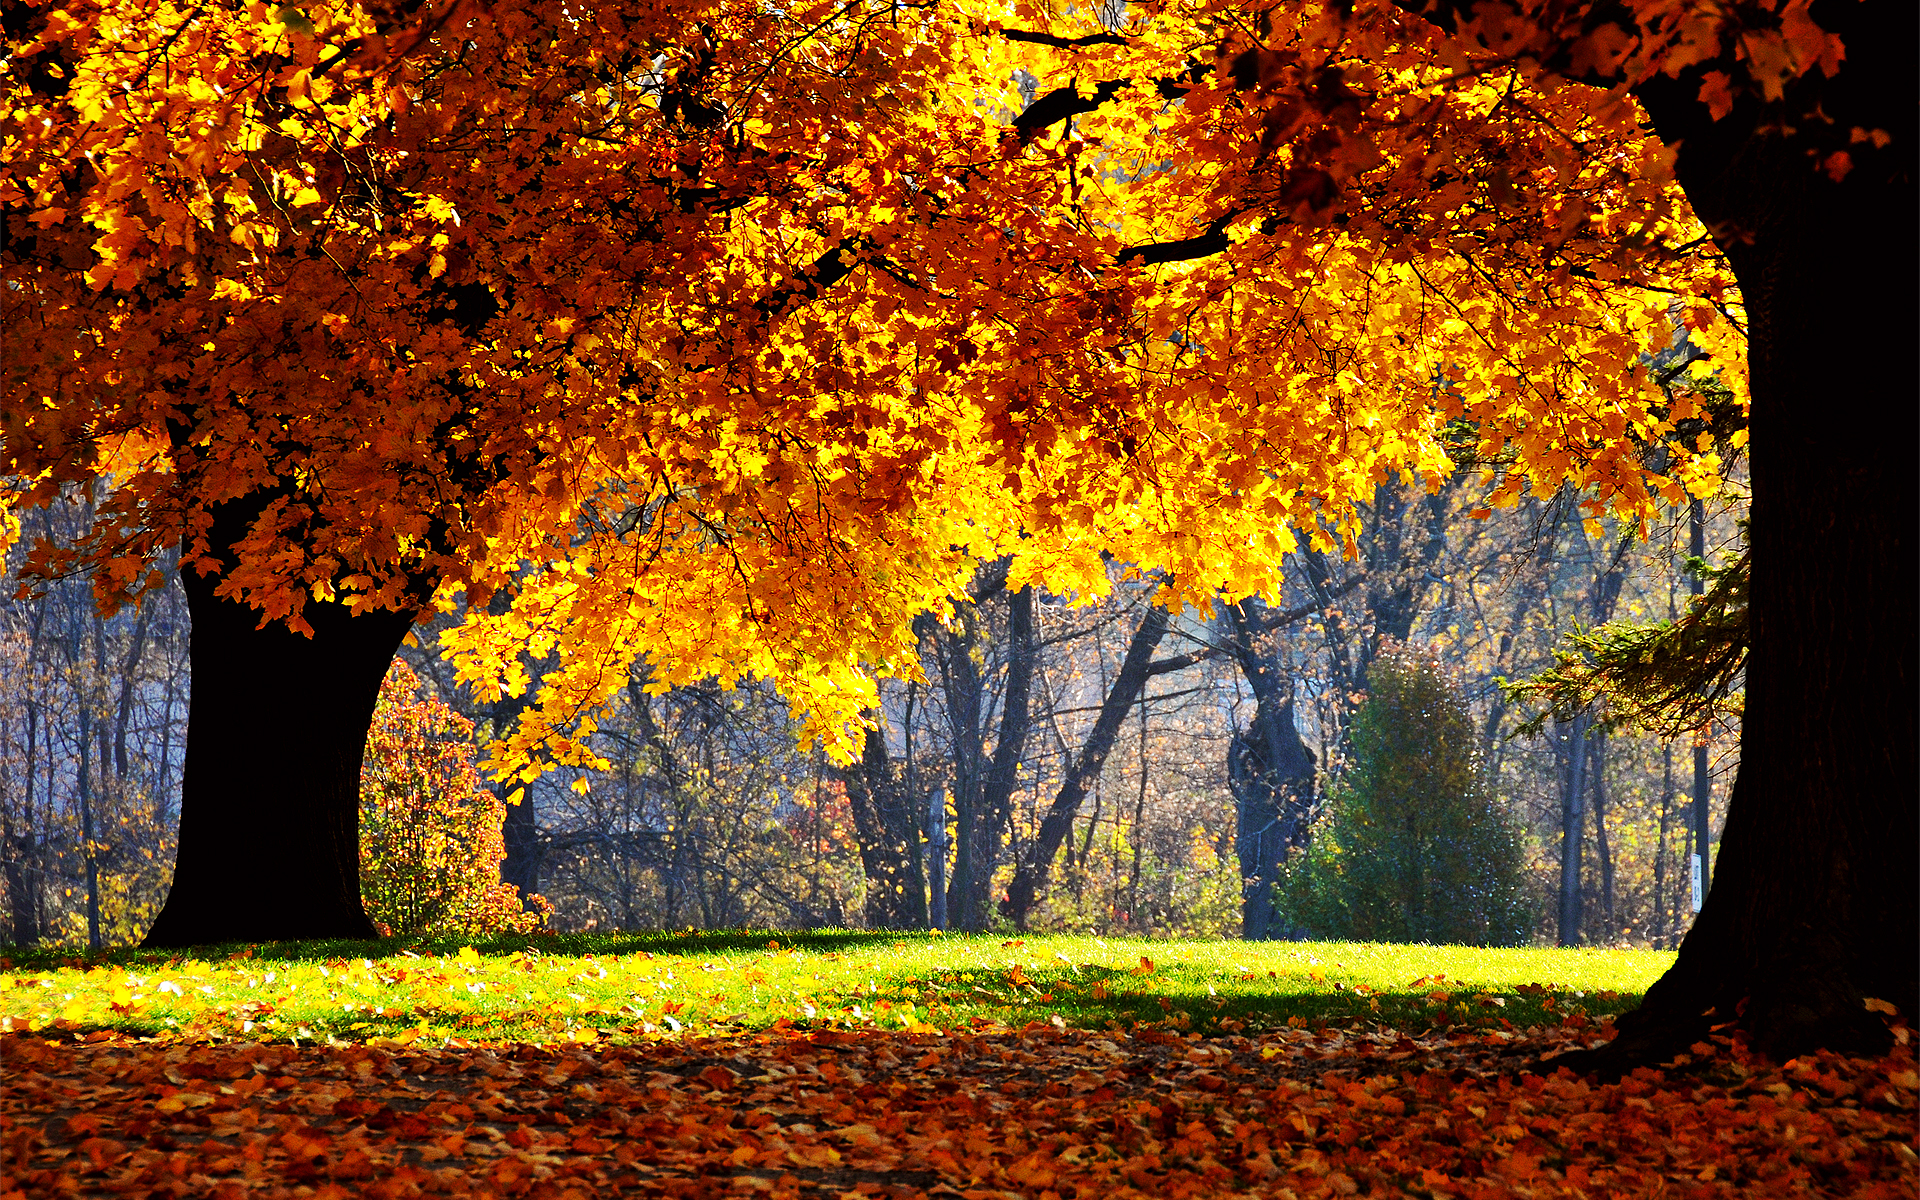 fall desktop wallpaper backgrounds   wwwwallpapers in hdcom 1920x1200